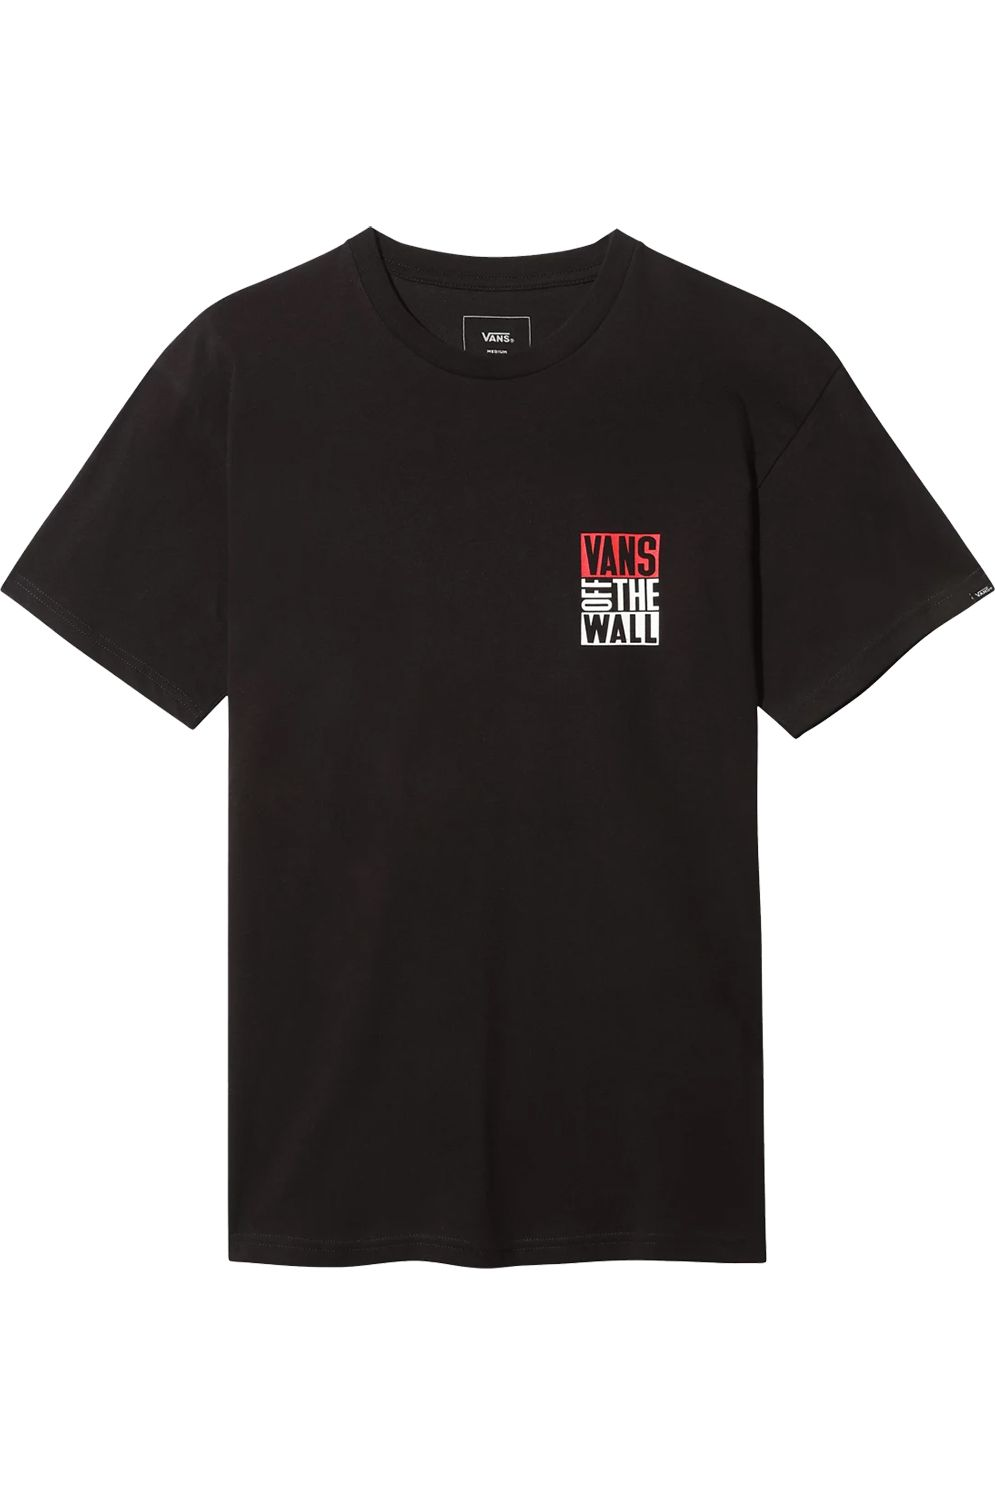 Vans T-Shirt NEW STAX Black